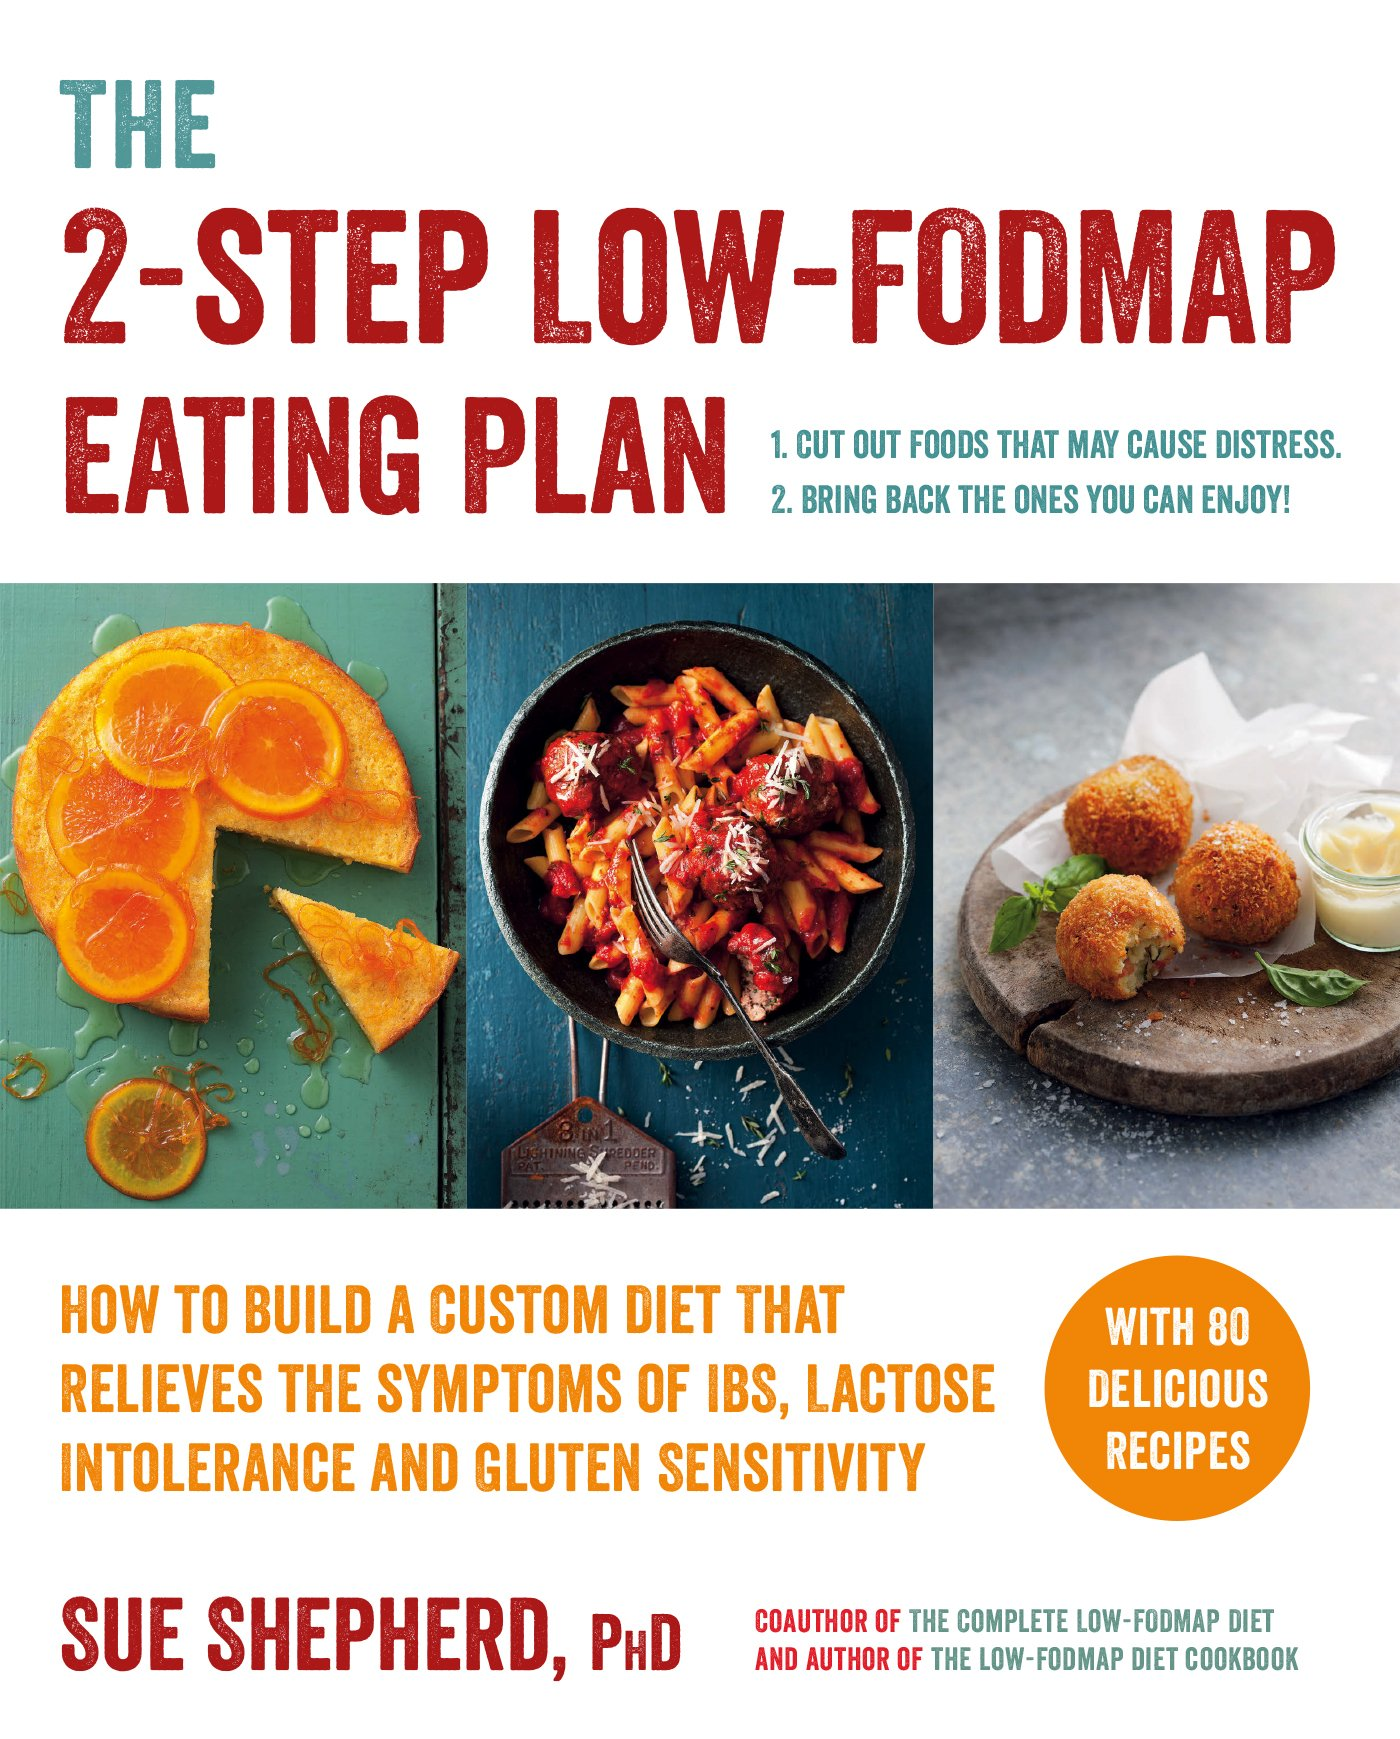 The 2 Step Low Fodmap Eating Plan: How to Build a Custom Diet That Relieves the Symptoms of IBS, Lactose Intolerance, and Gluten Sensitivity